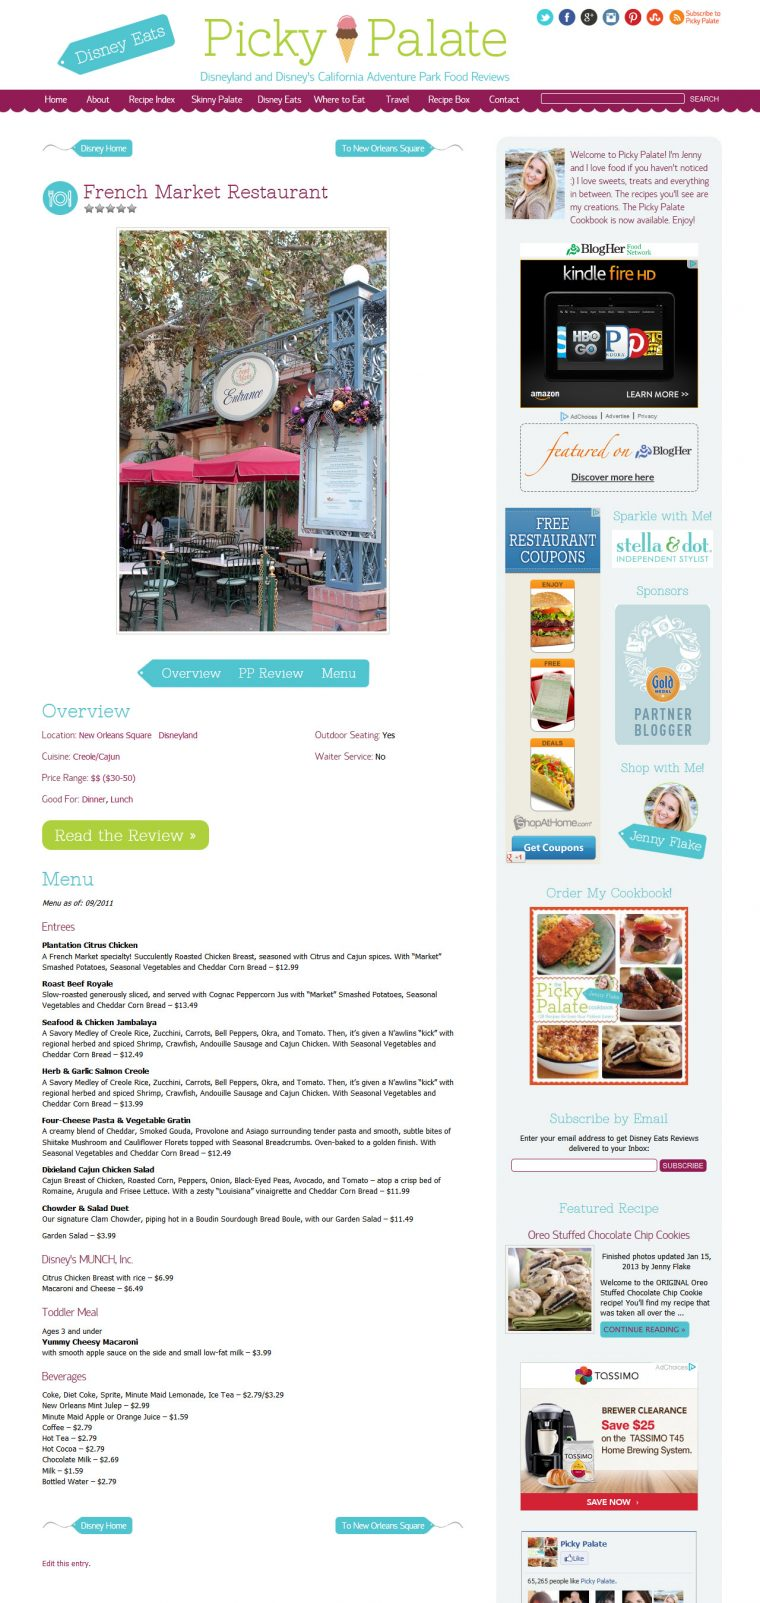 Disney Eats Restaurant Overview page